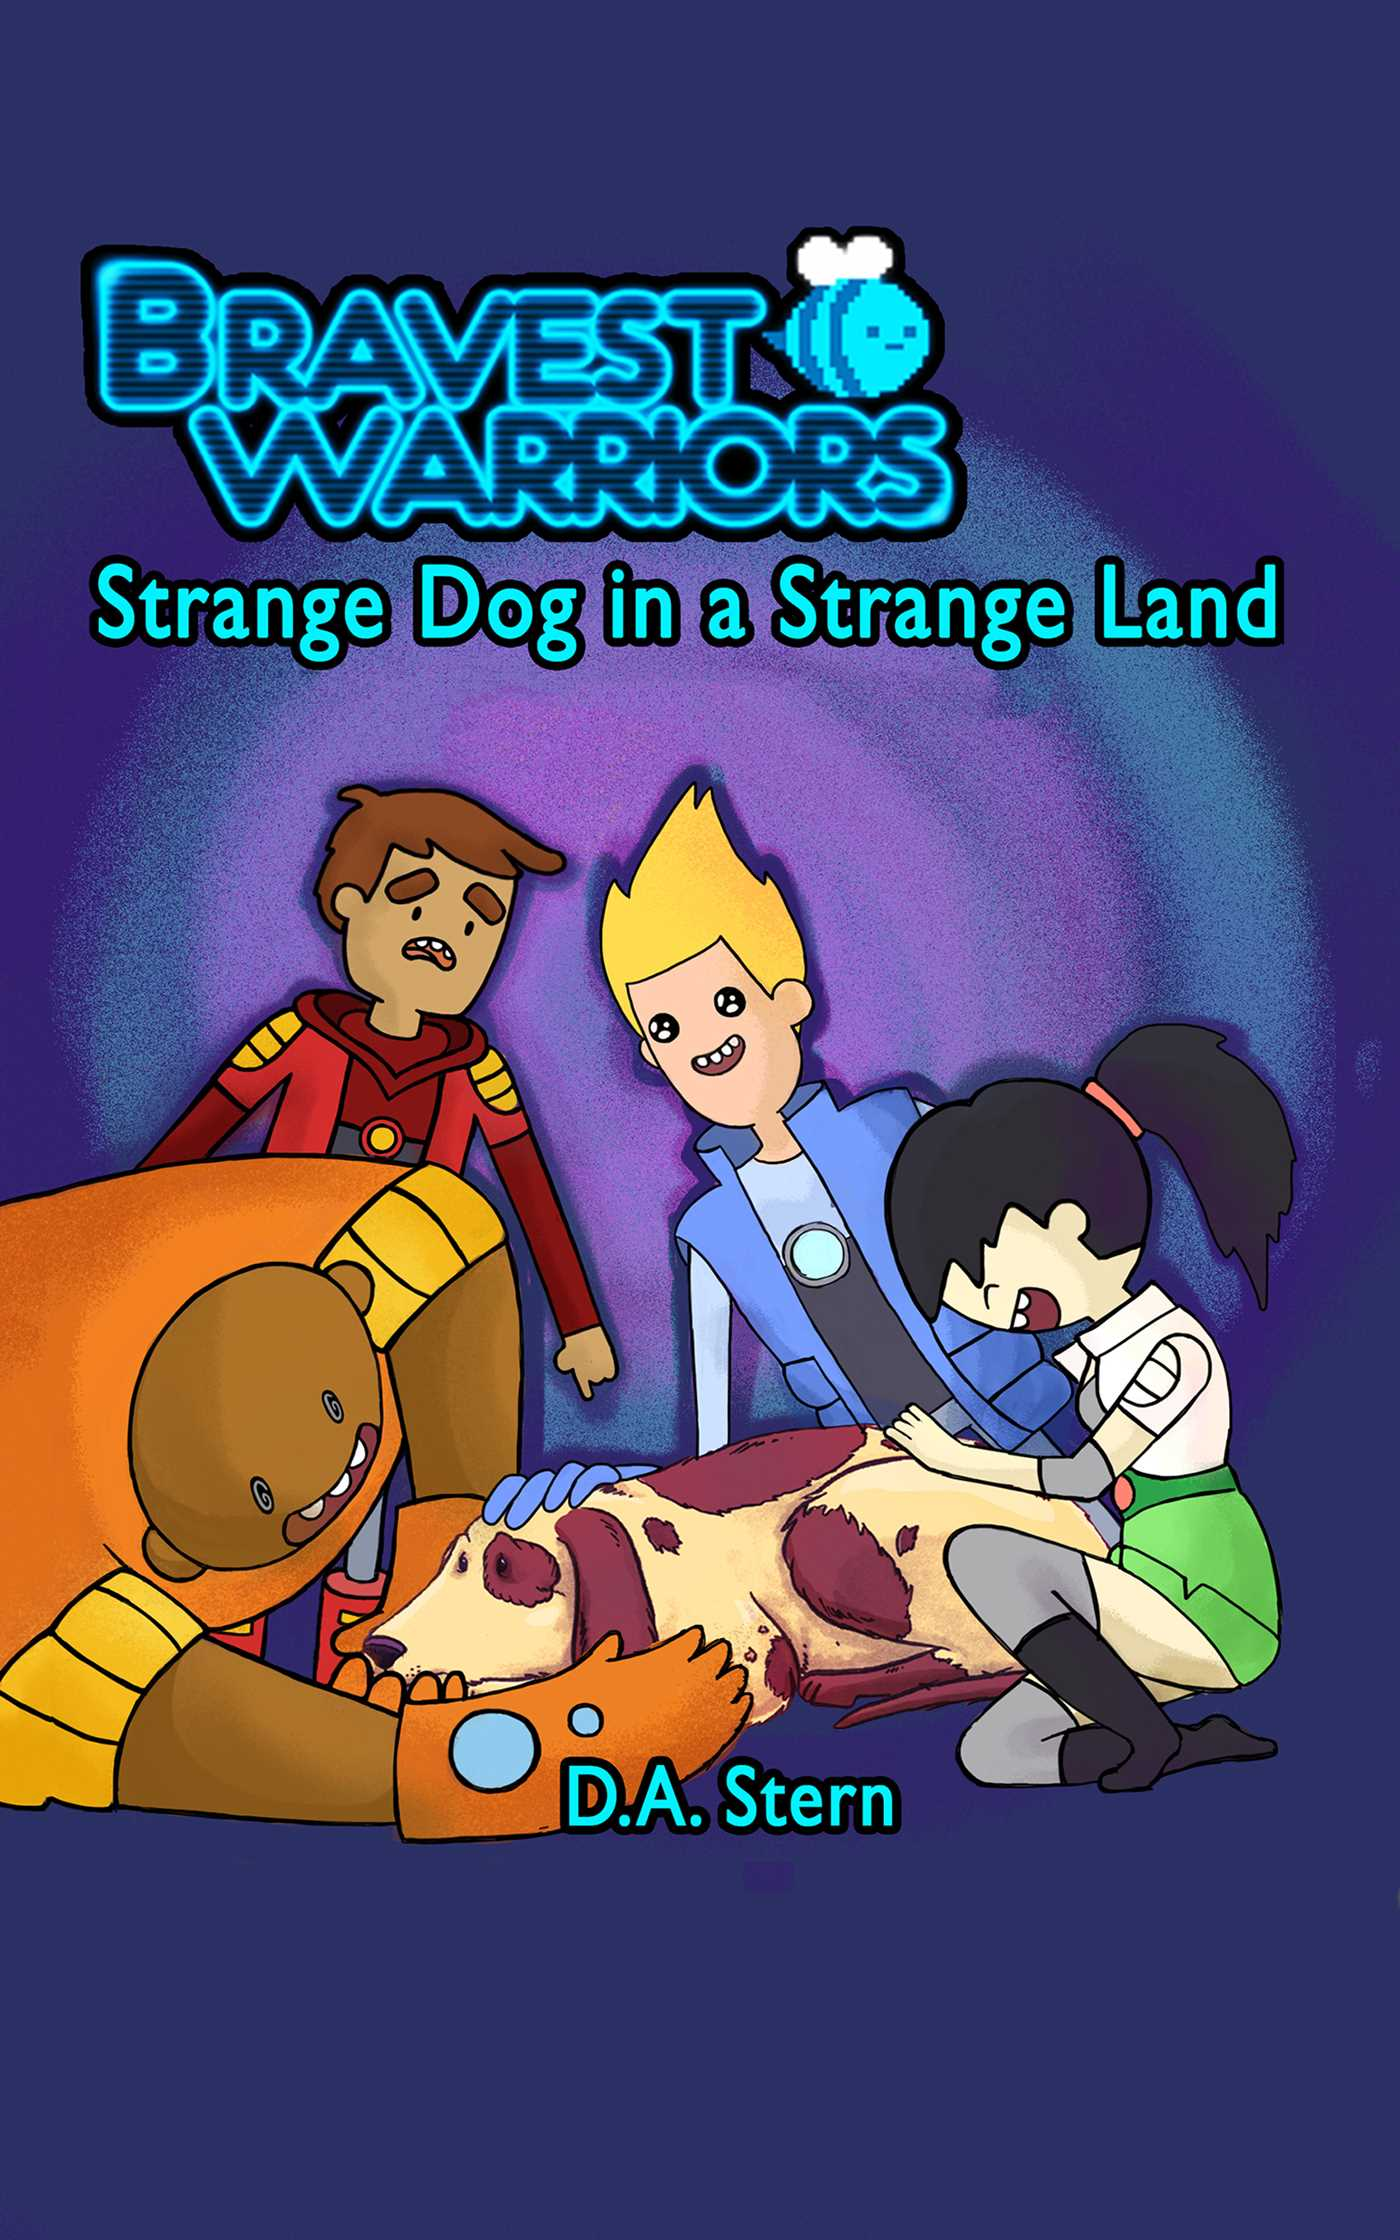 Bravest warriors strange dog in a strange land 9781627260398 hr